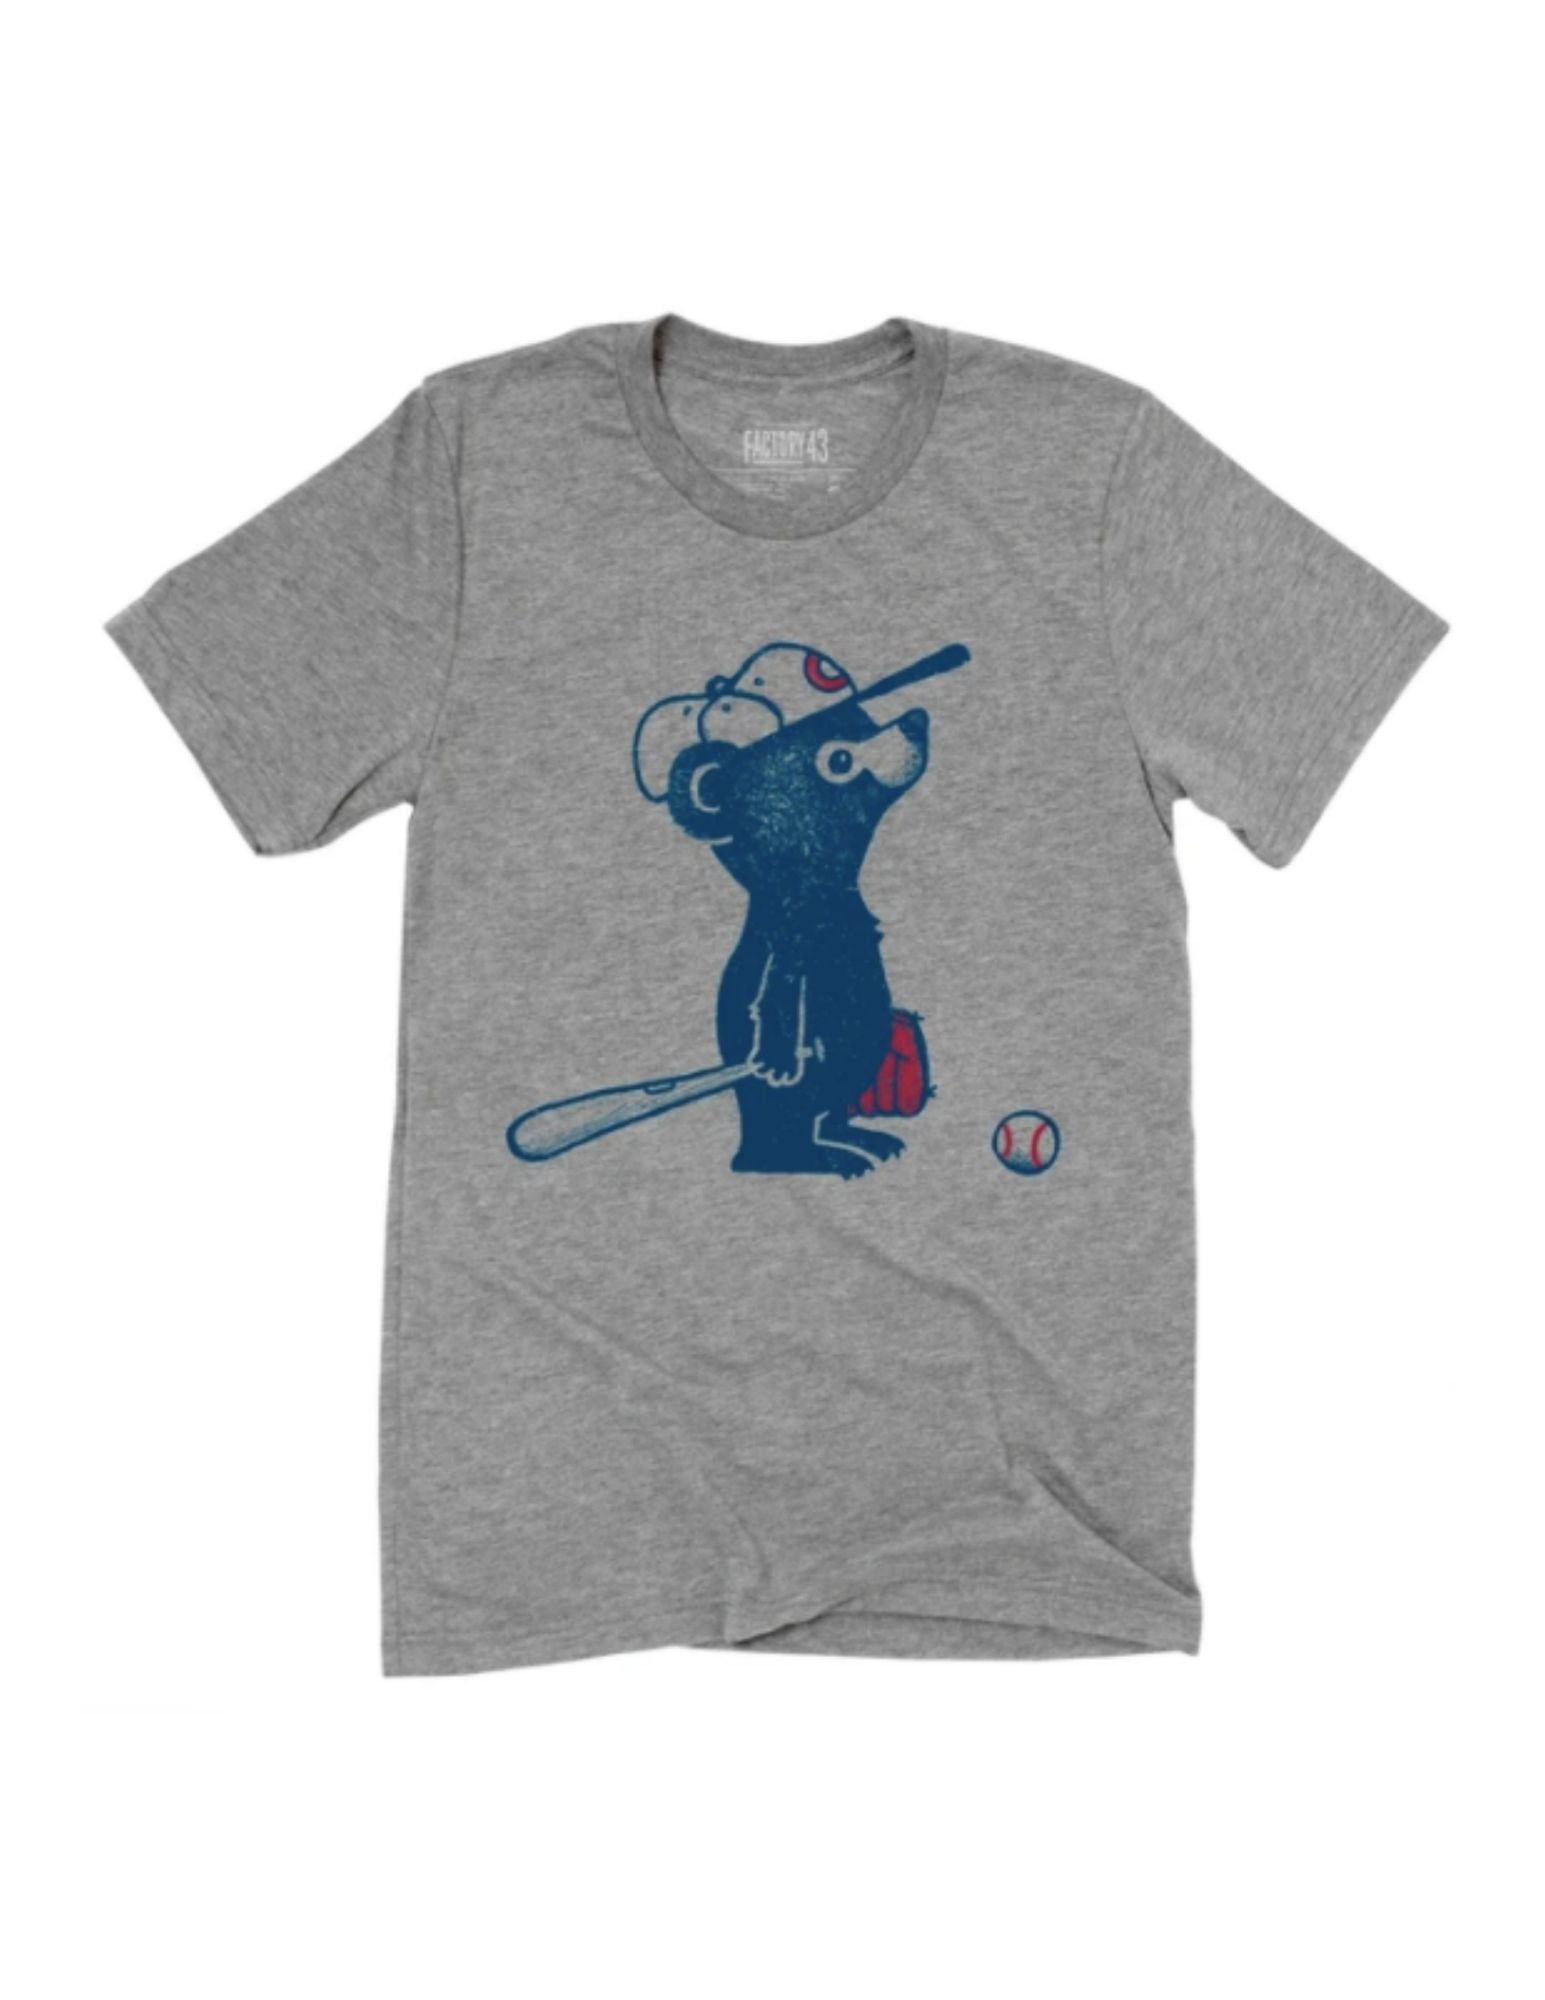 Lovable Loser Kid's Regional Tee (Chicago Cubs)